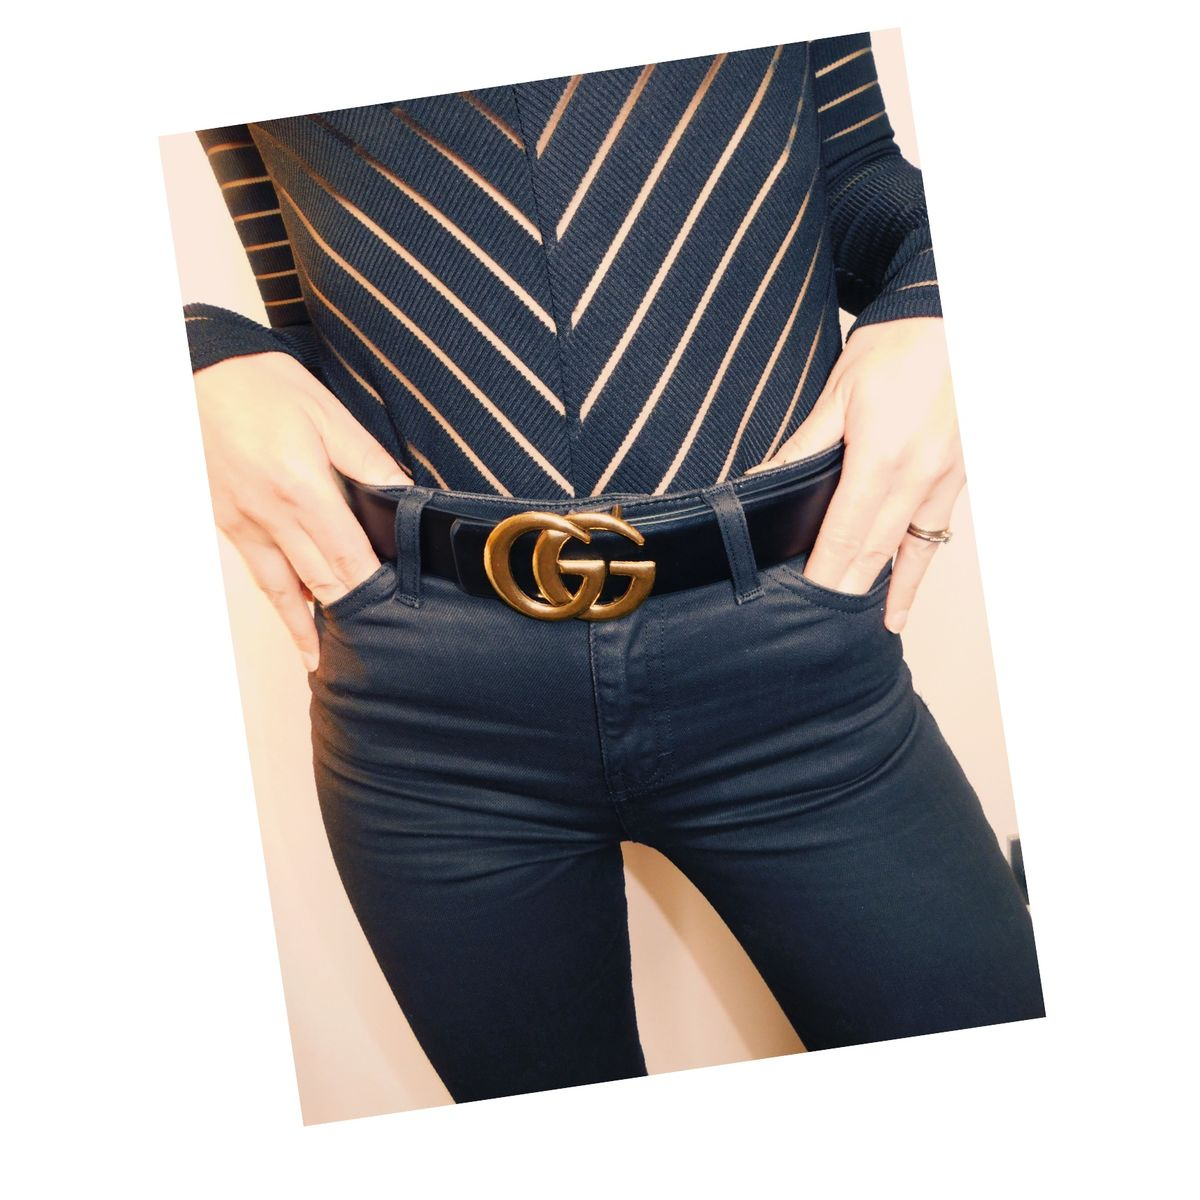 THE G BELT  - product image